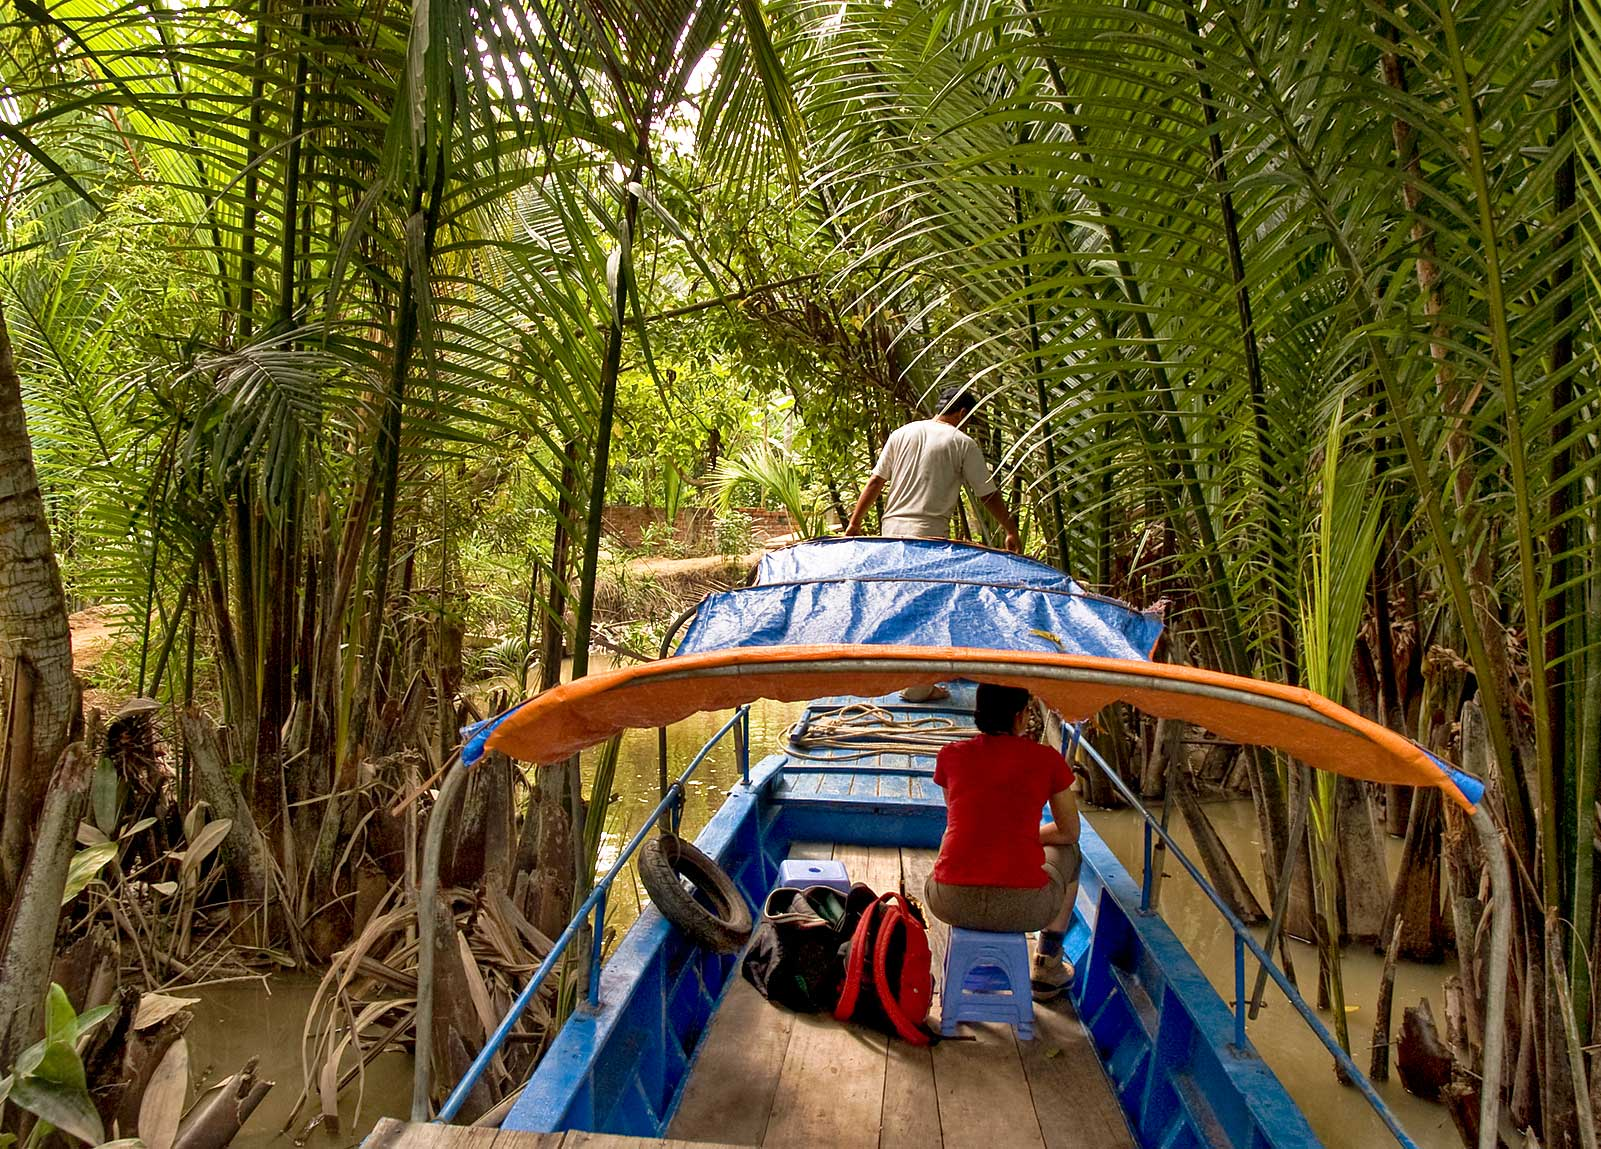 Mekong delta tours range from luxury mekong boat tours and cruises to